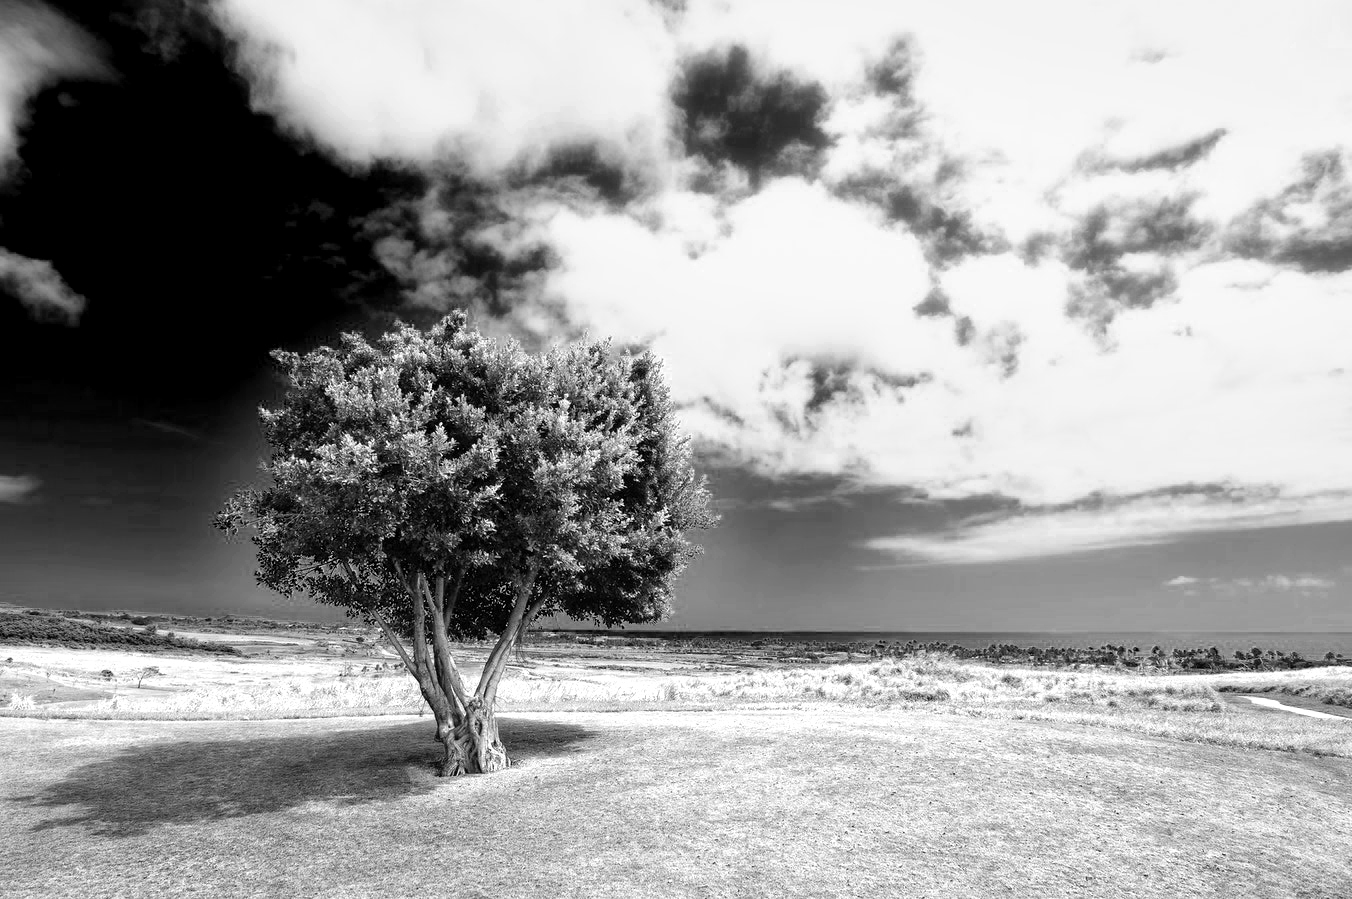 red filter for black and white photography